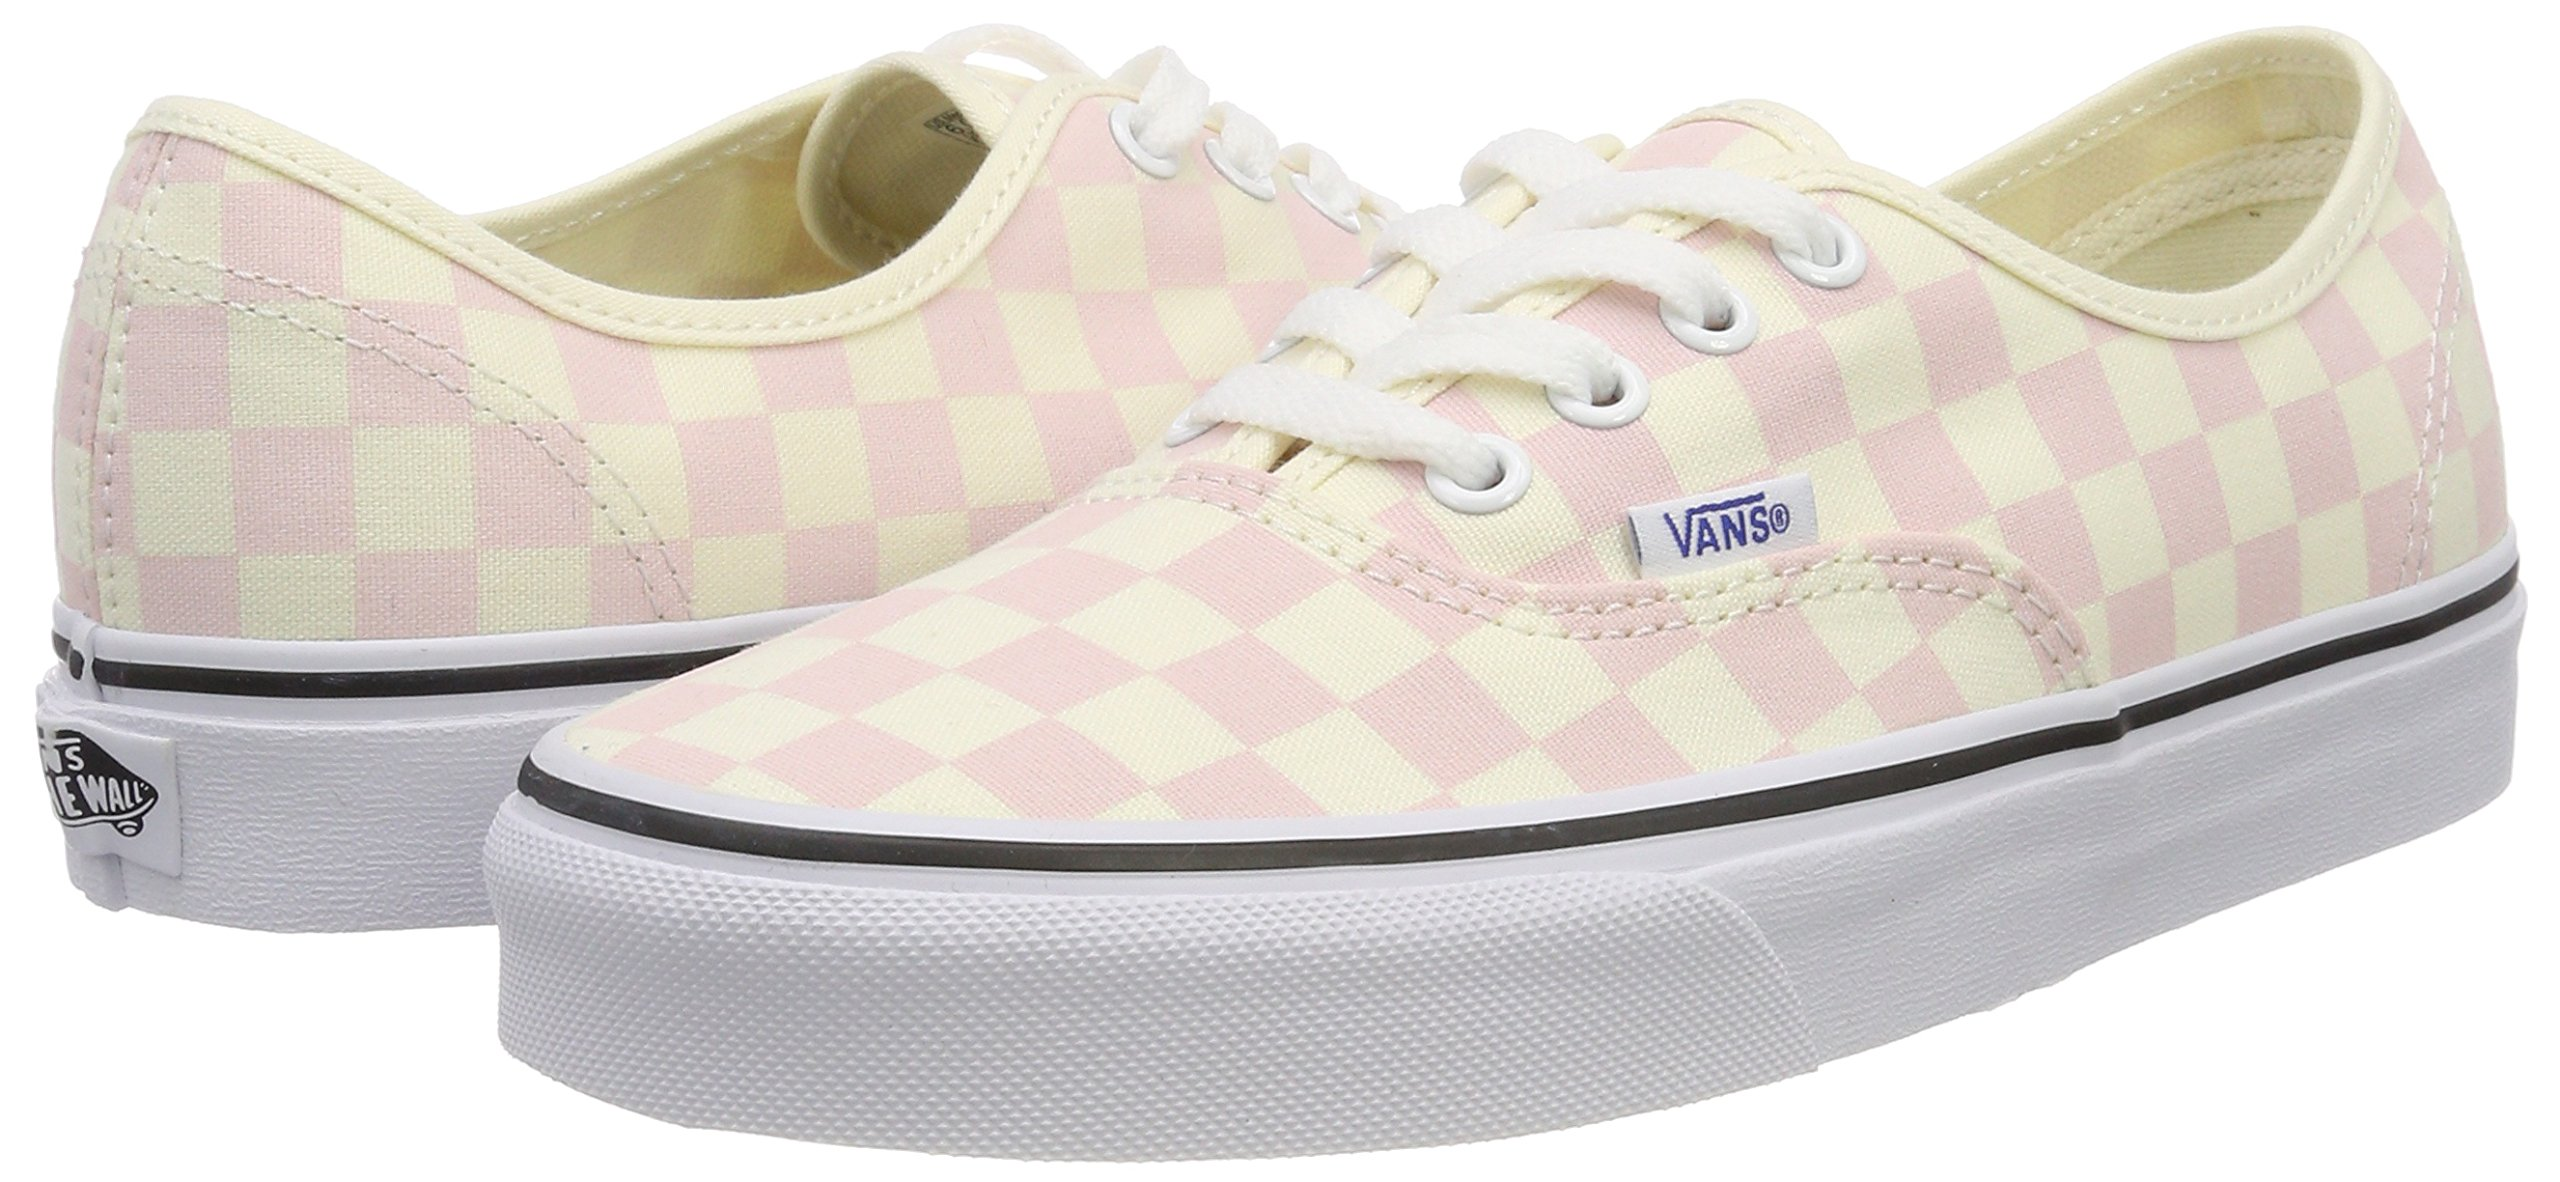 Vans Women's Authentic Trainers, Pink (Checkerboard) Chalk Pink/Classic White Q8l, 5.5 UK 38.5 EU by Vans (Image #5)